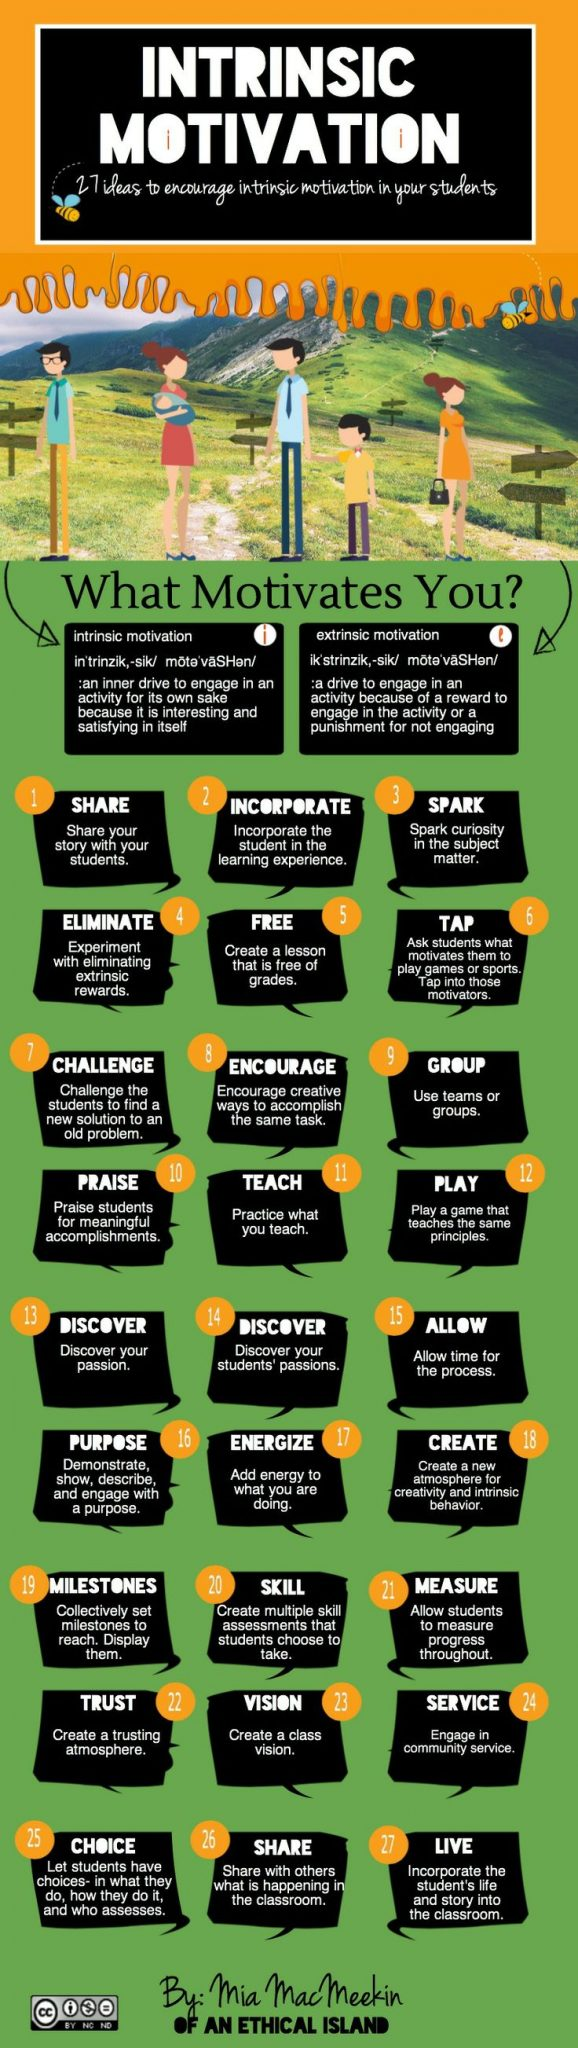 Extrinsic Vs Intrinsic Motivation 27 Ways To Promote Int...